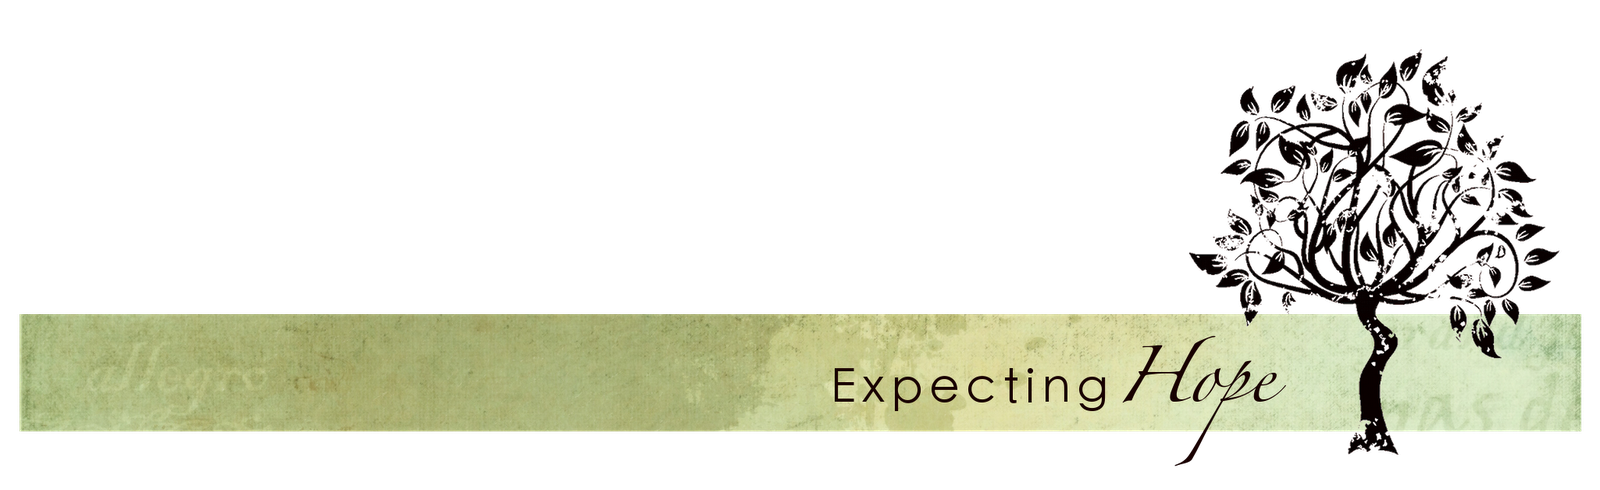 expecting hope